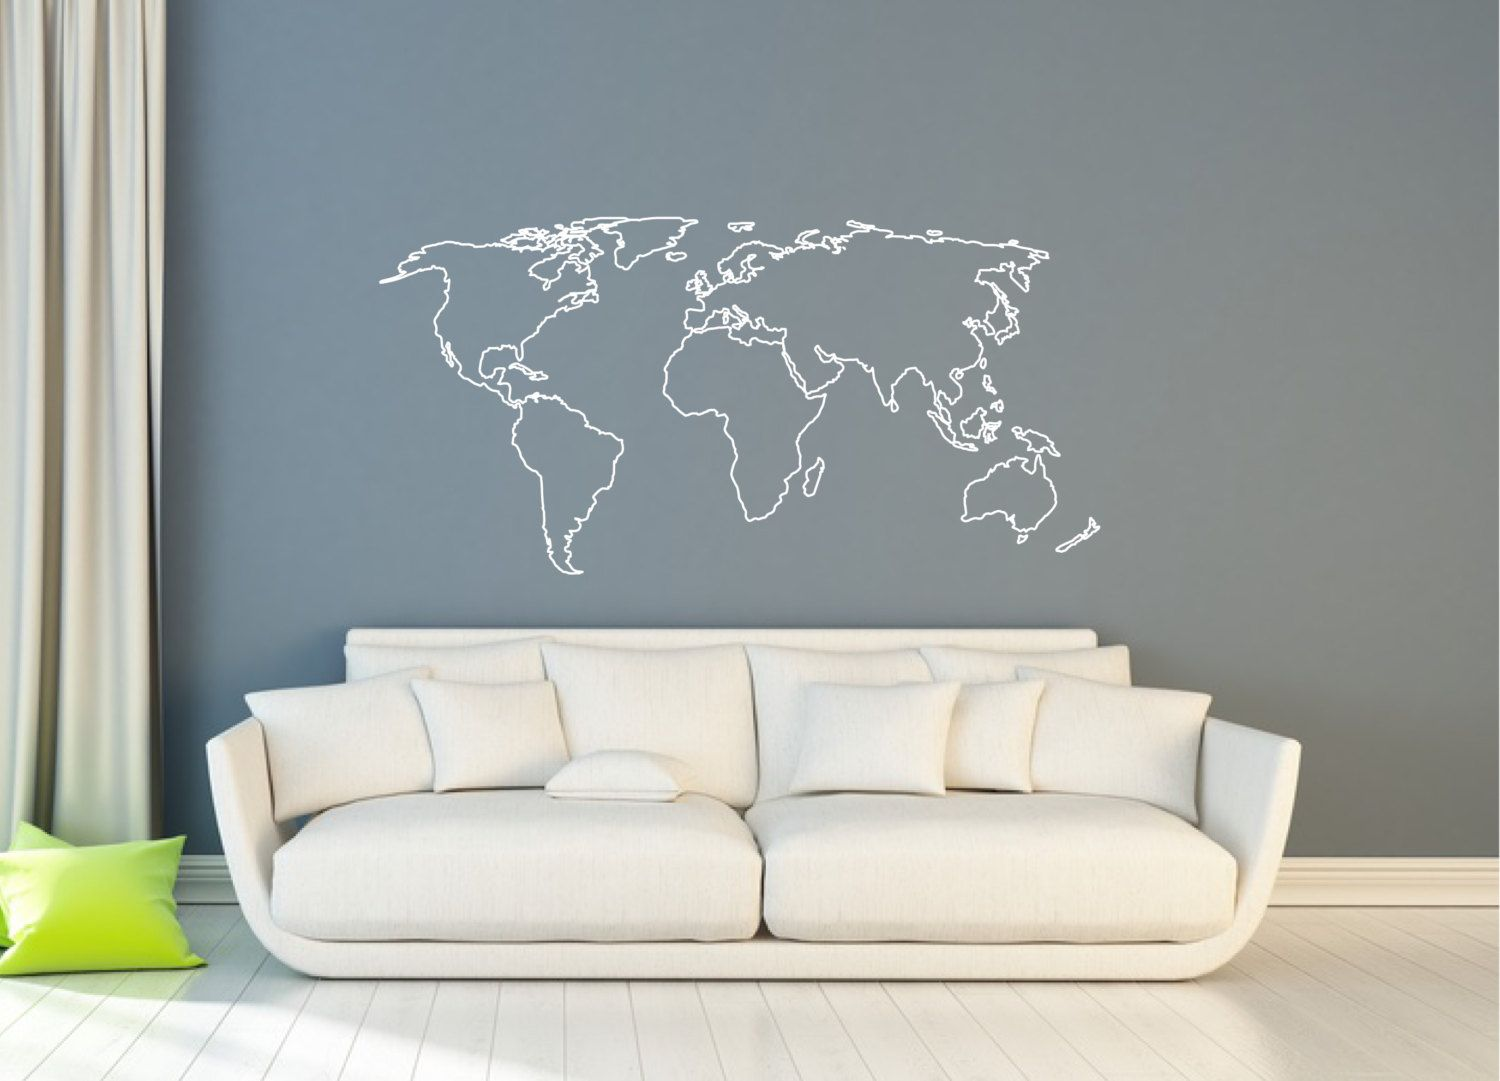 World map wall sticker design map of countries wall decal wall world map wall sticker design map of countries wall decal wall travel decor gumiabroncs Gallery